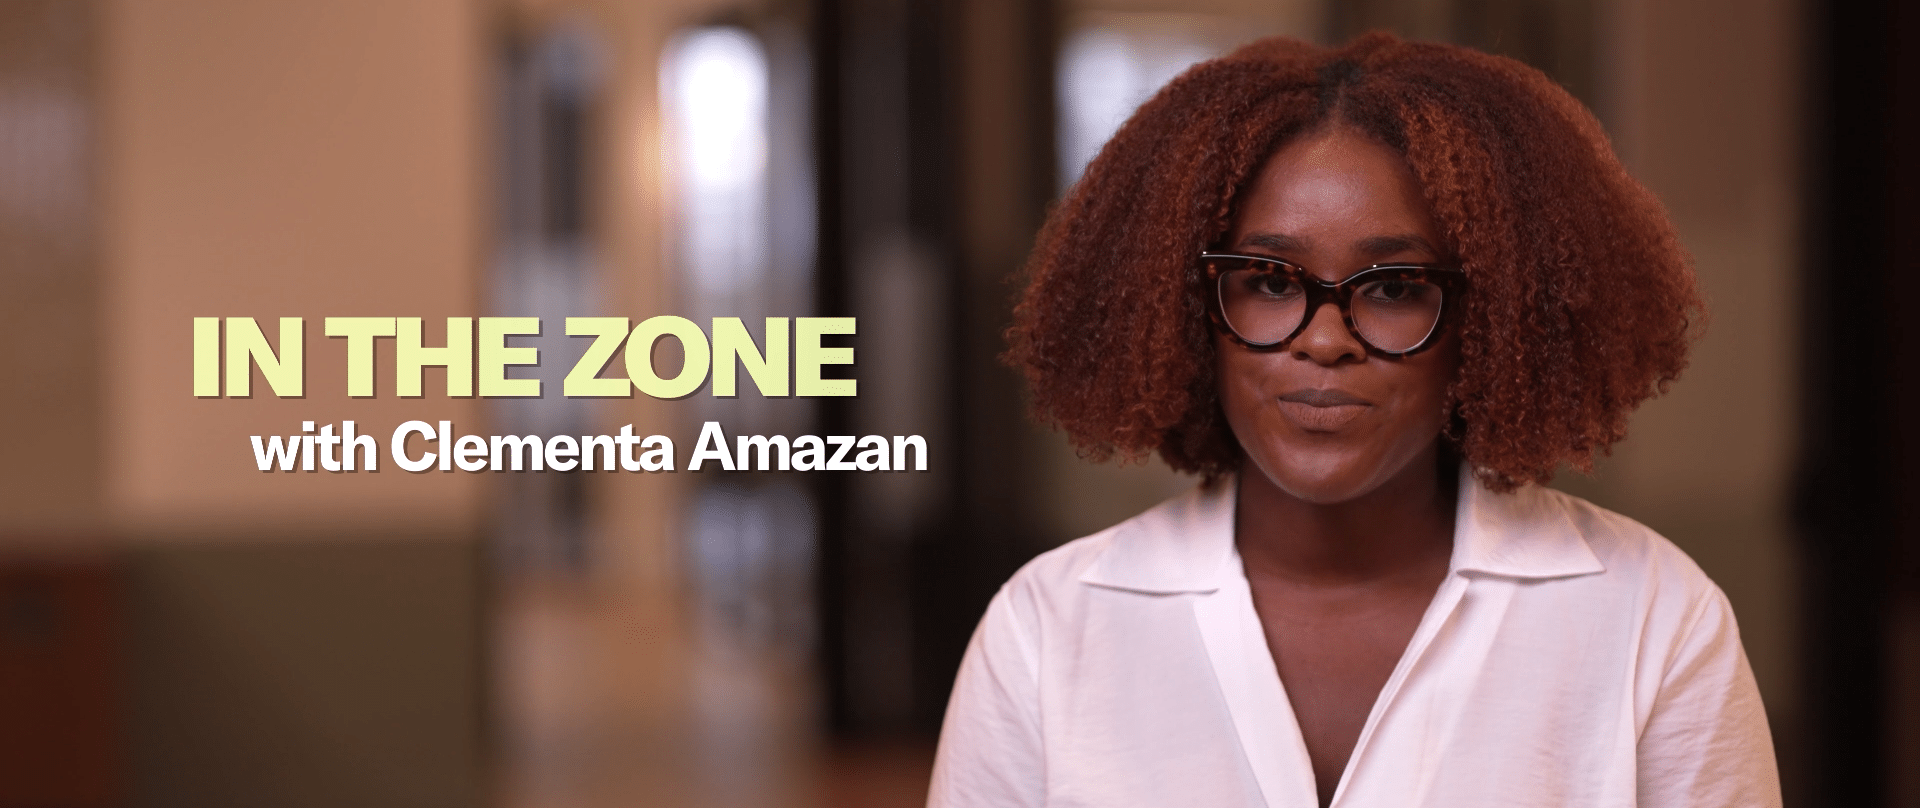 In the Zone with Clementa Amazan – Episode 3